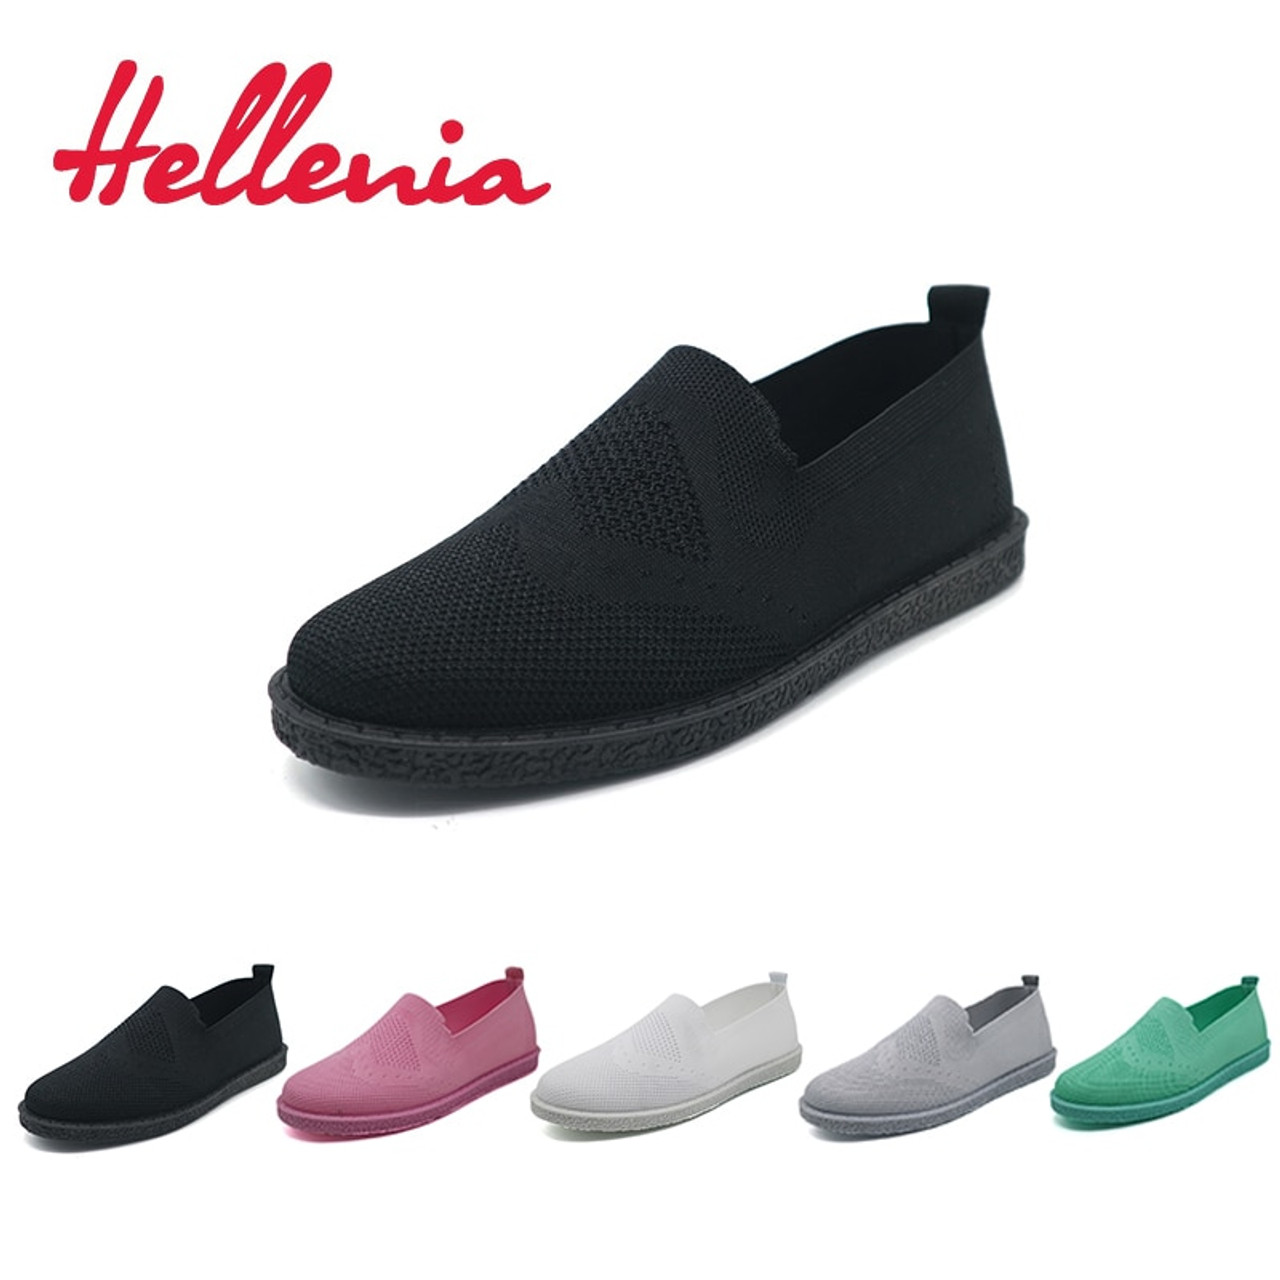 3dc5177fd18 Hellenia New Fashion Women Casual Shoes Slip On Summer Woven Loafers Women s  Flats Breathable Comfort Ladies ...